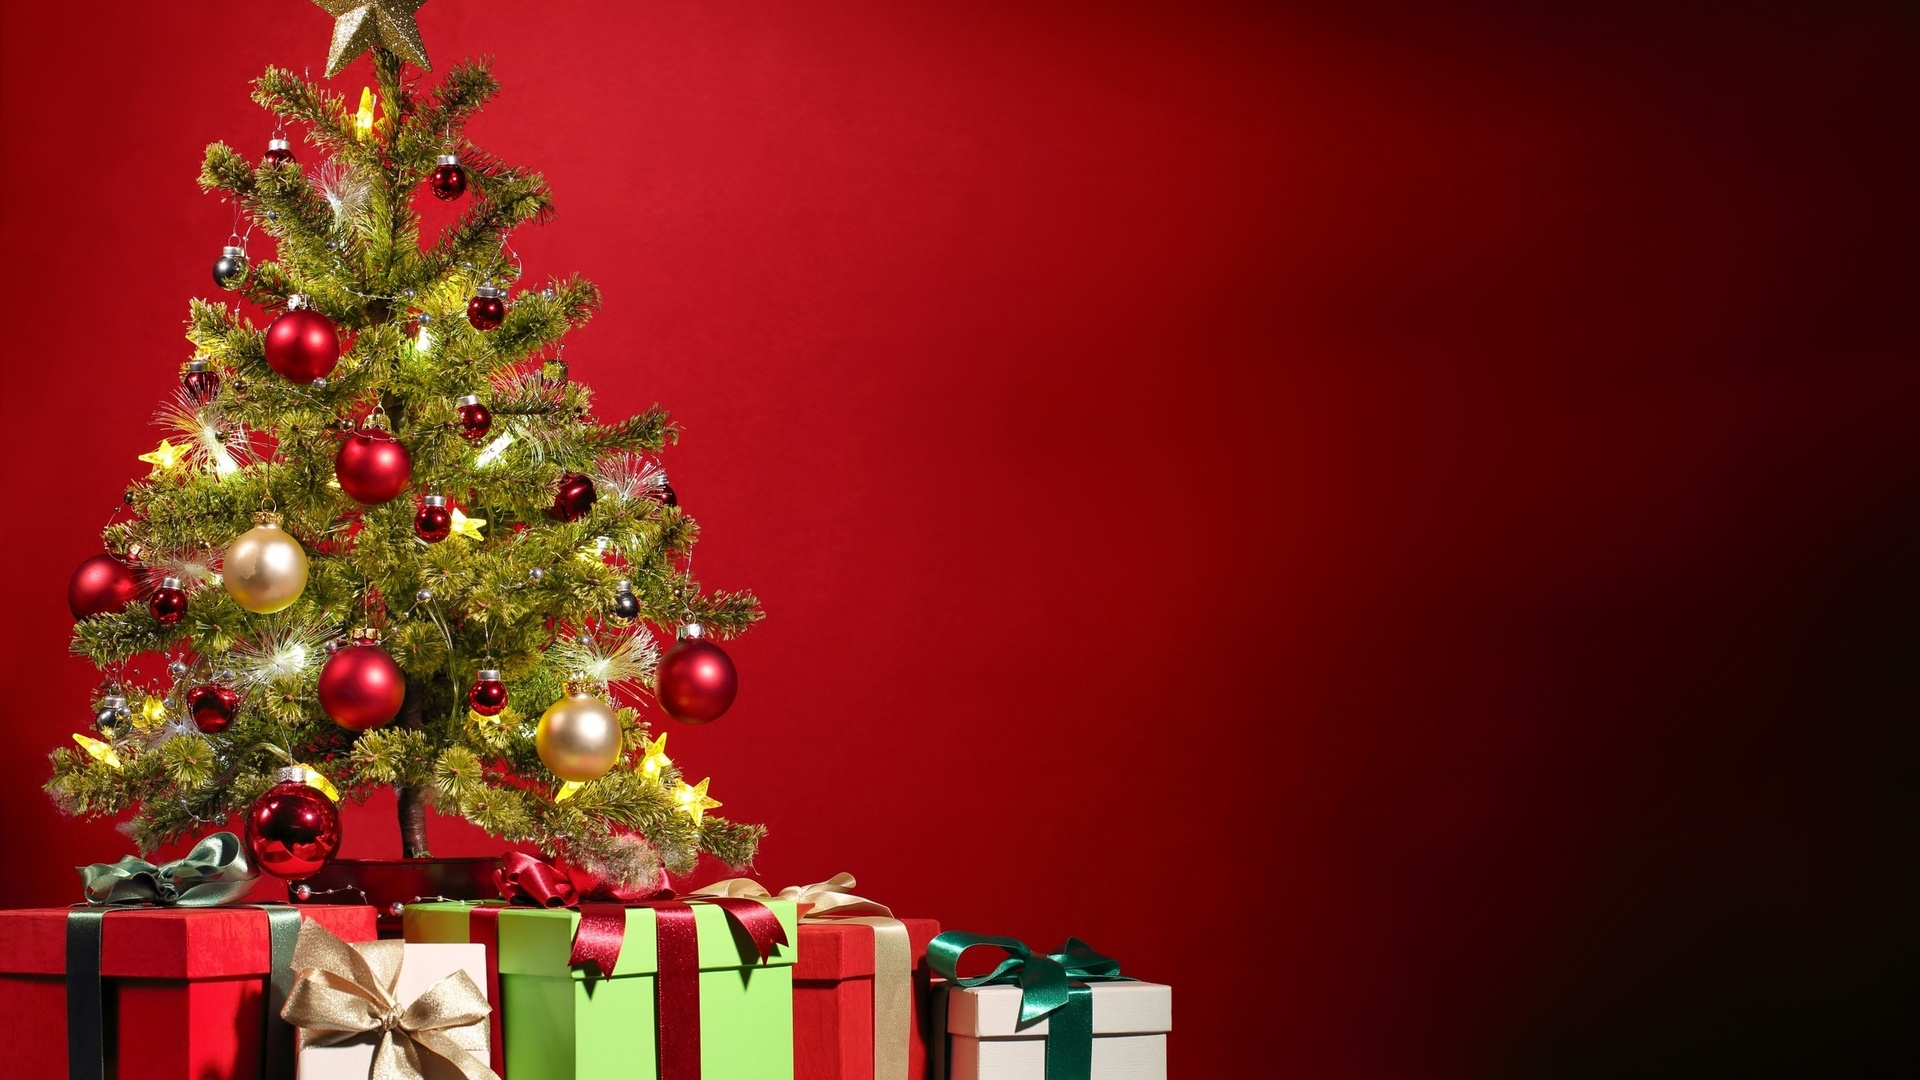 happy christmas greetings tree gifts latest hd wallpaper